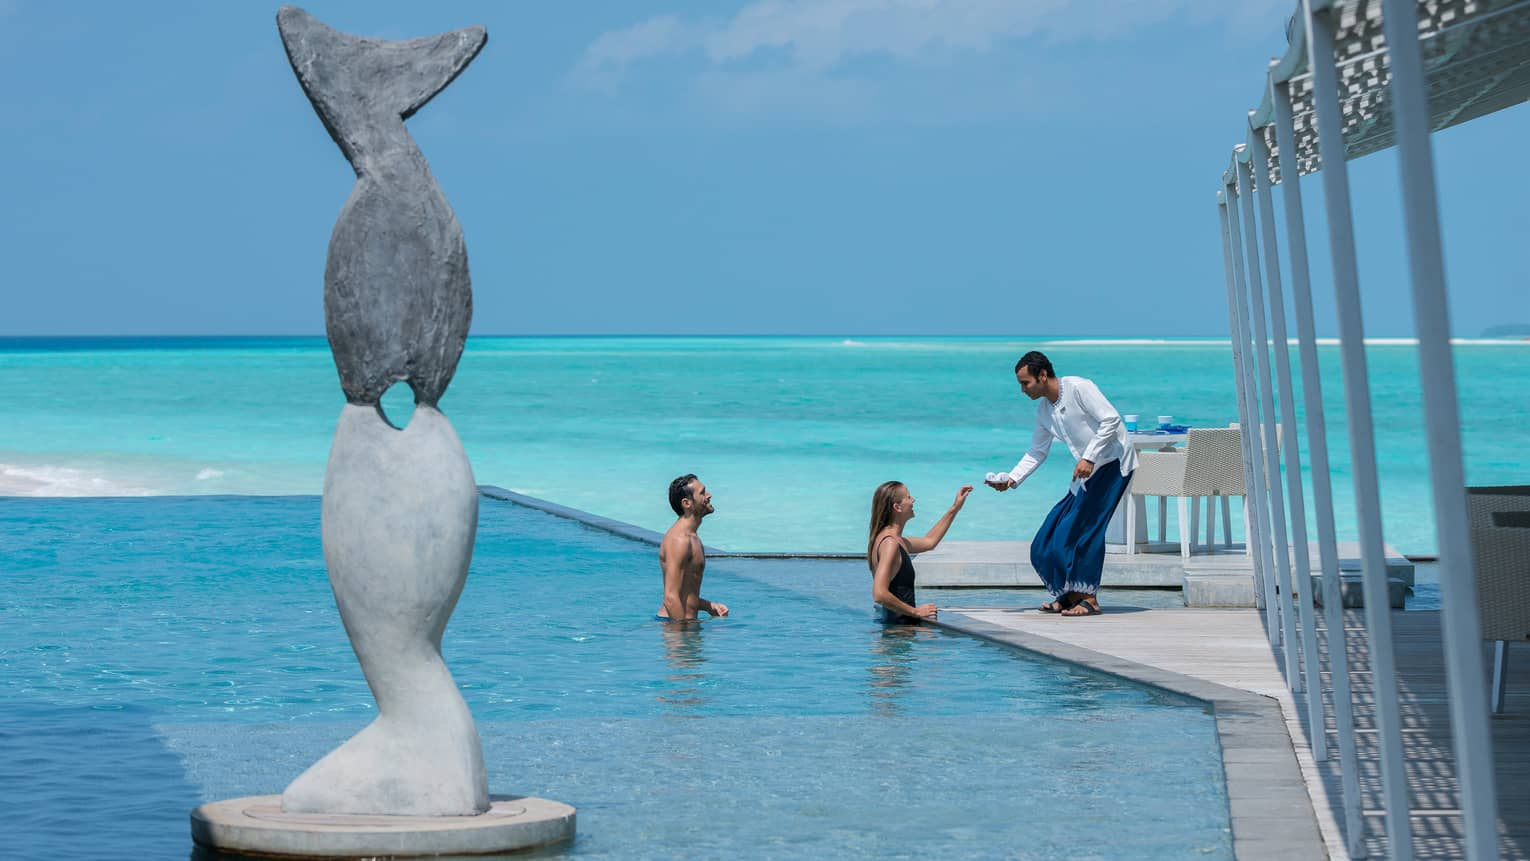 Server passes small towels to man, woman in swimming pool beyond tall stone statue of fish